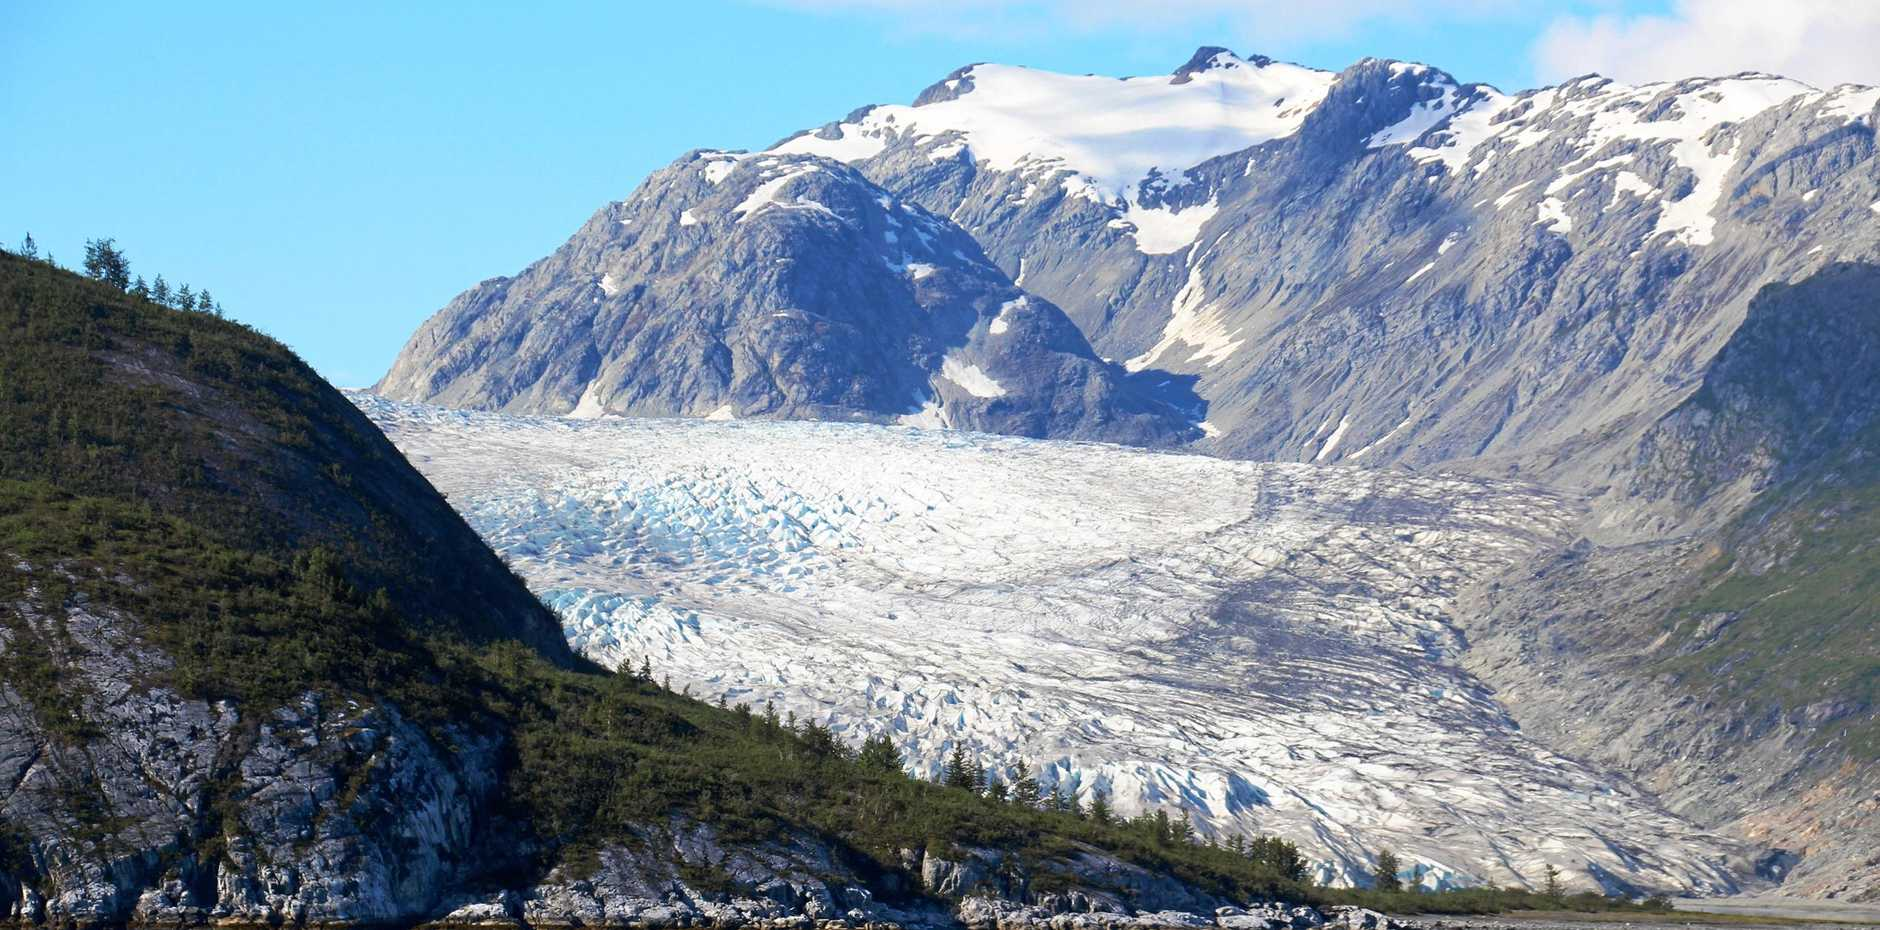 The majestic scenery of Glacier Bay.